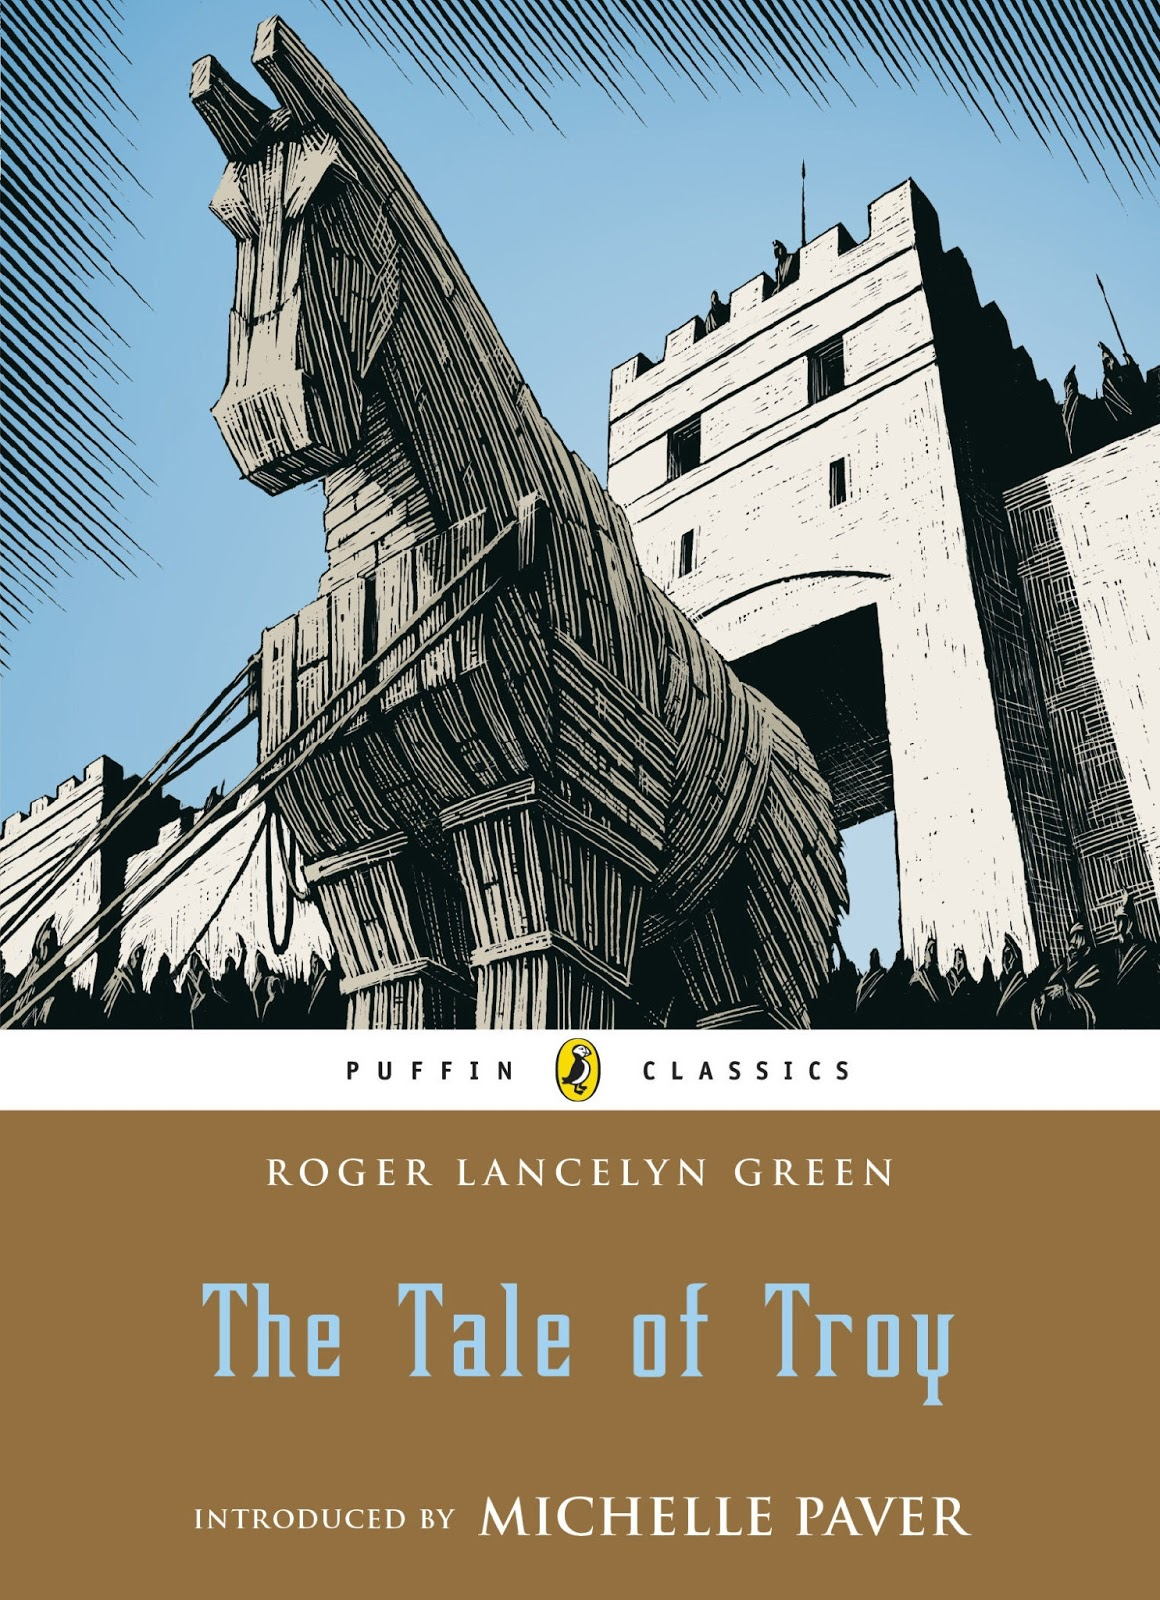 troy a heroic tale essay Answer to bookfences by august wilson research question: i need a five pararaph essays explains the topic this is a research paper i need citation i believe that troy is a modern day tragic hero approach.